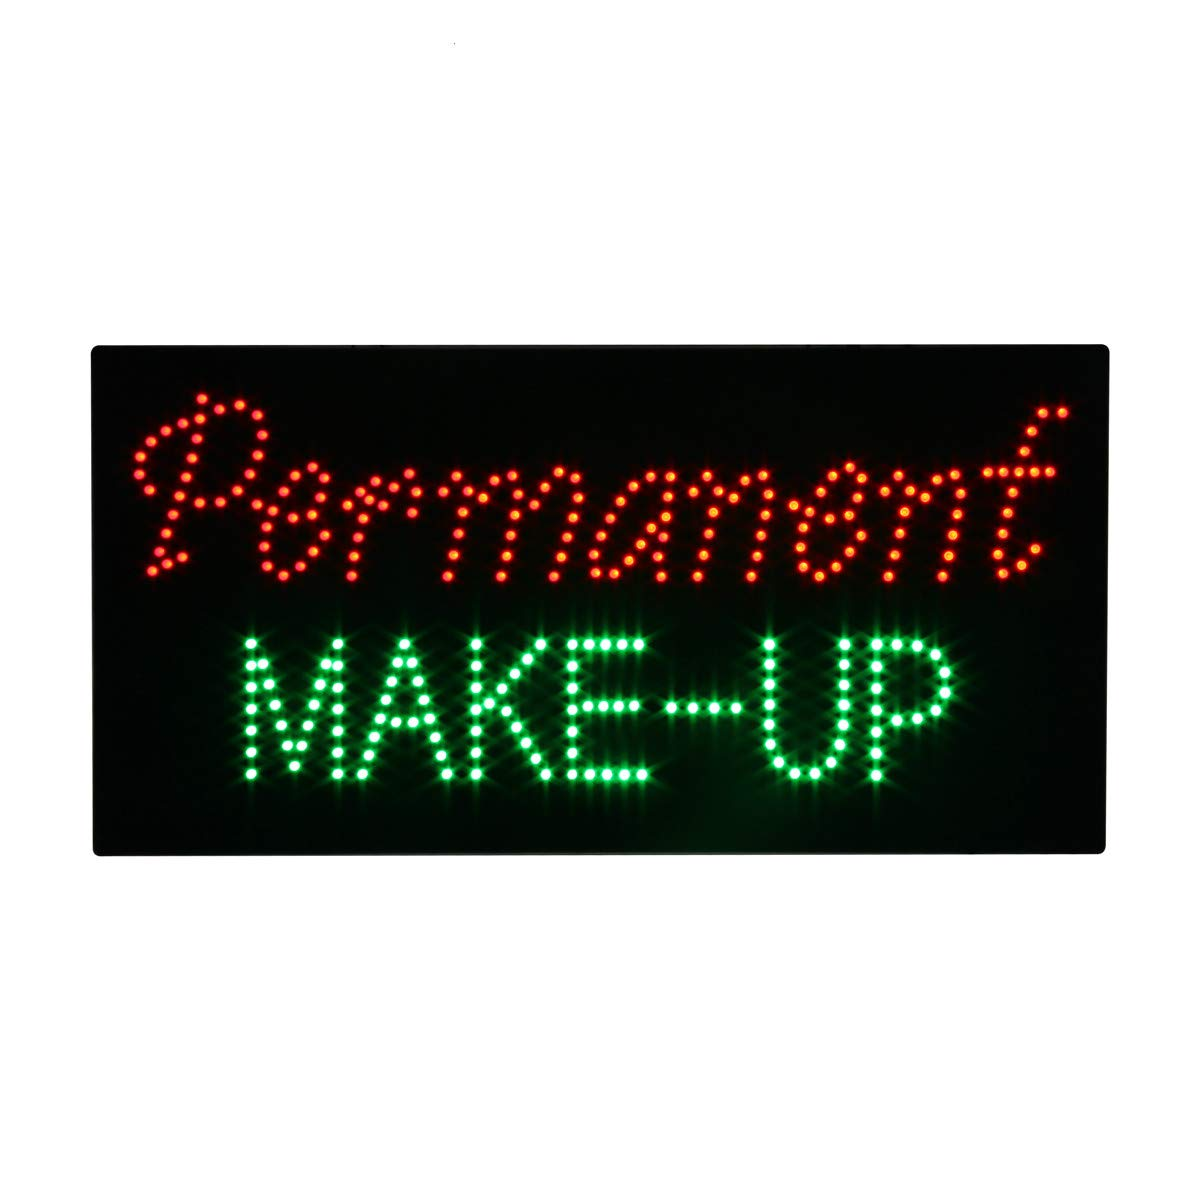 LED Permanent Make up Cosmetics Open Light Sign Super Bright Advertising Display Board for Beauty Eyebrow Lash Microblading Spa Business Shop Store Window Bedroom Decor 24 x 12 inches